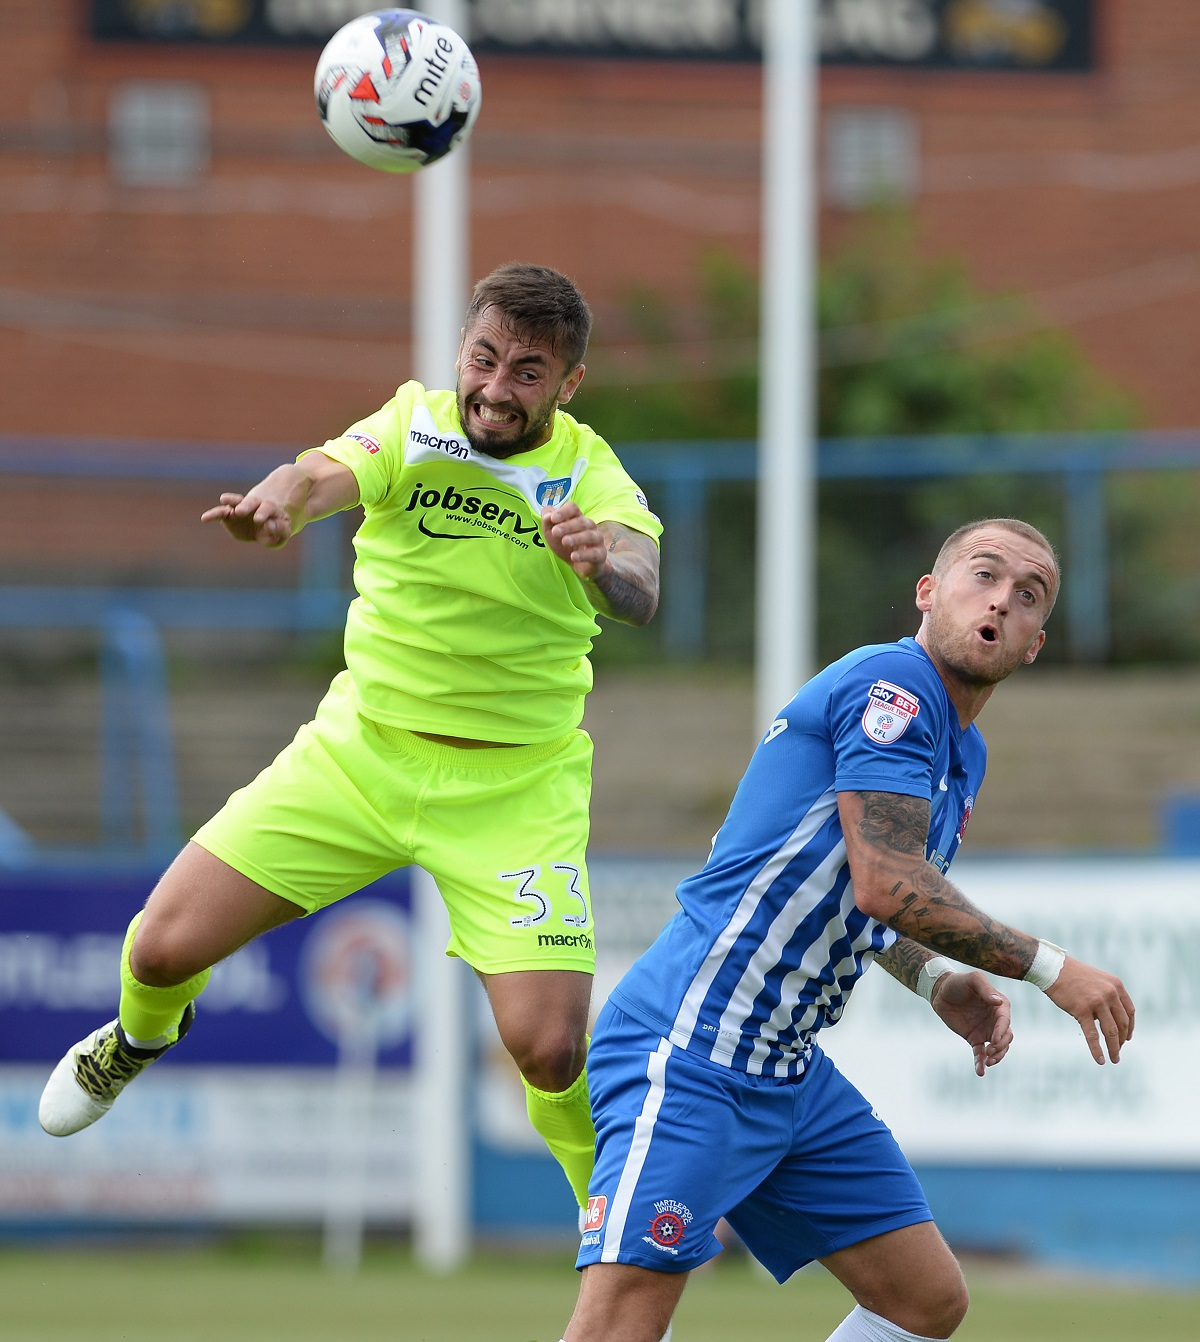 Eye on the ball - Lewis Kinsella (left) wins a header during his Colchester United debut at Hartlepool United. Picture: WARREN PAGE